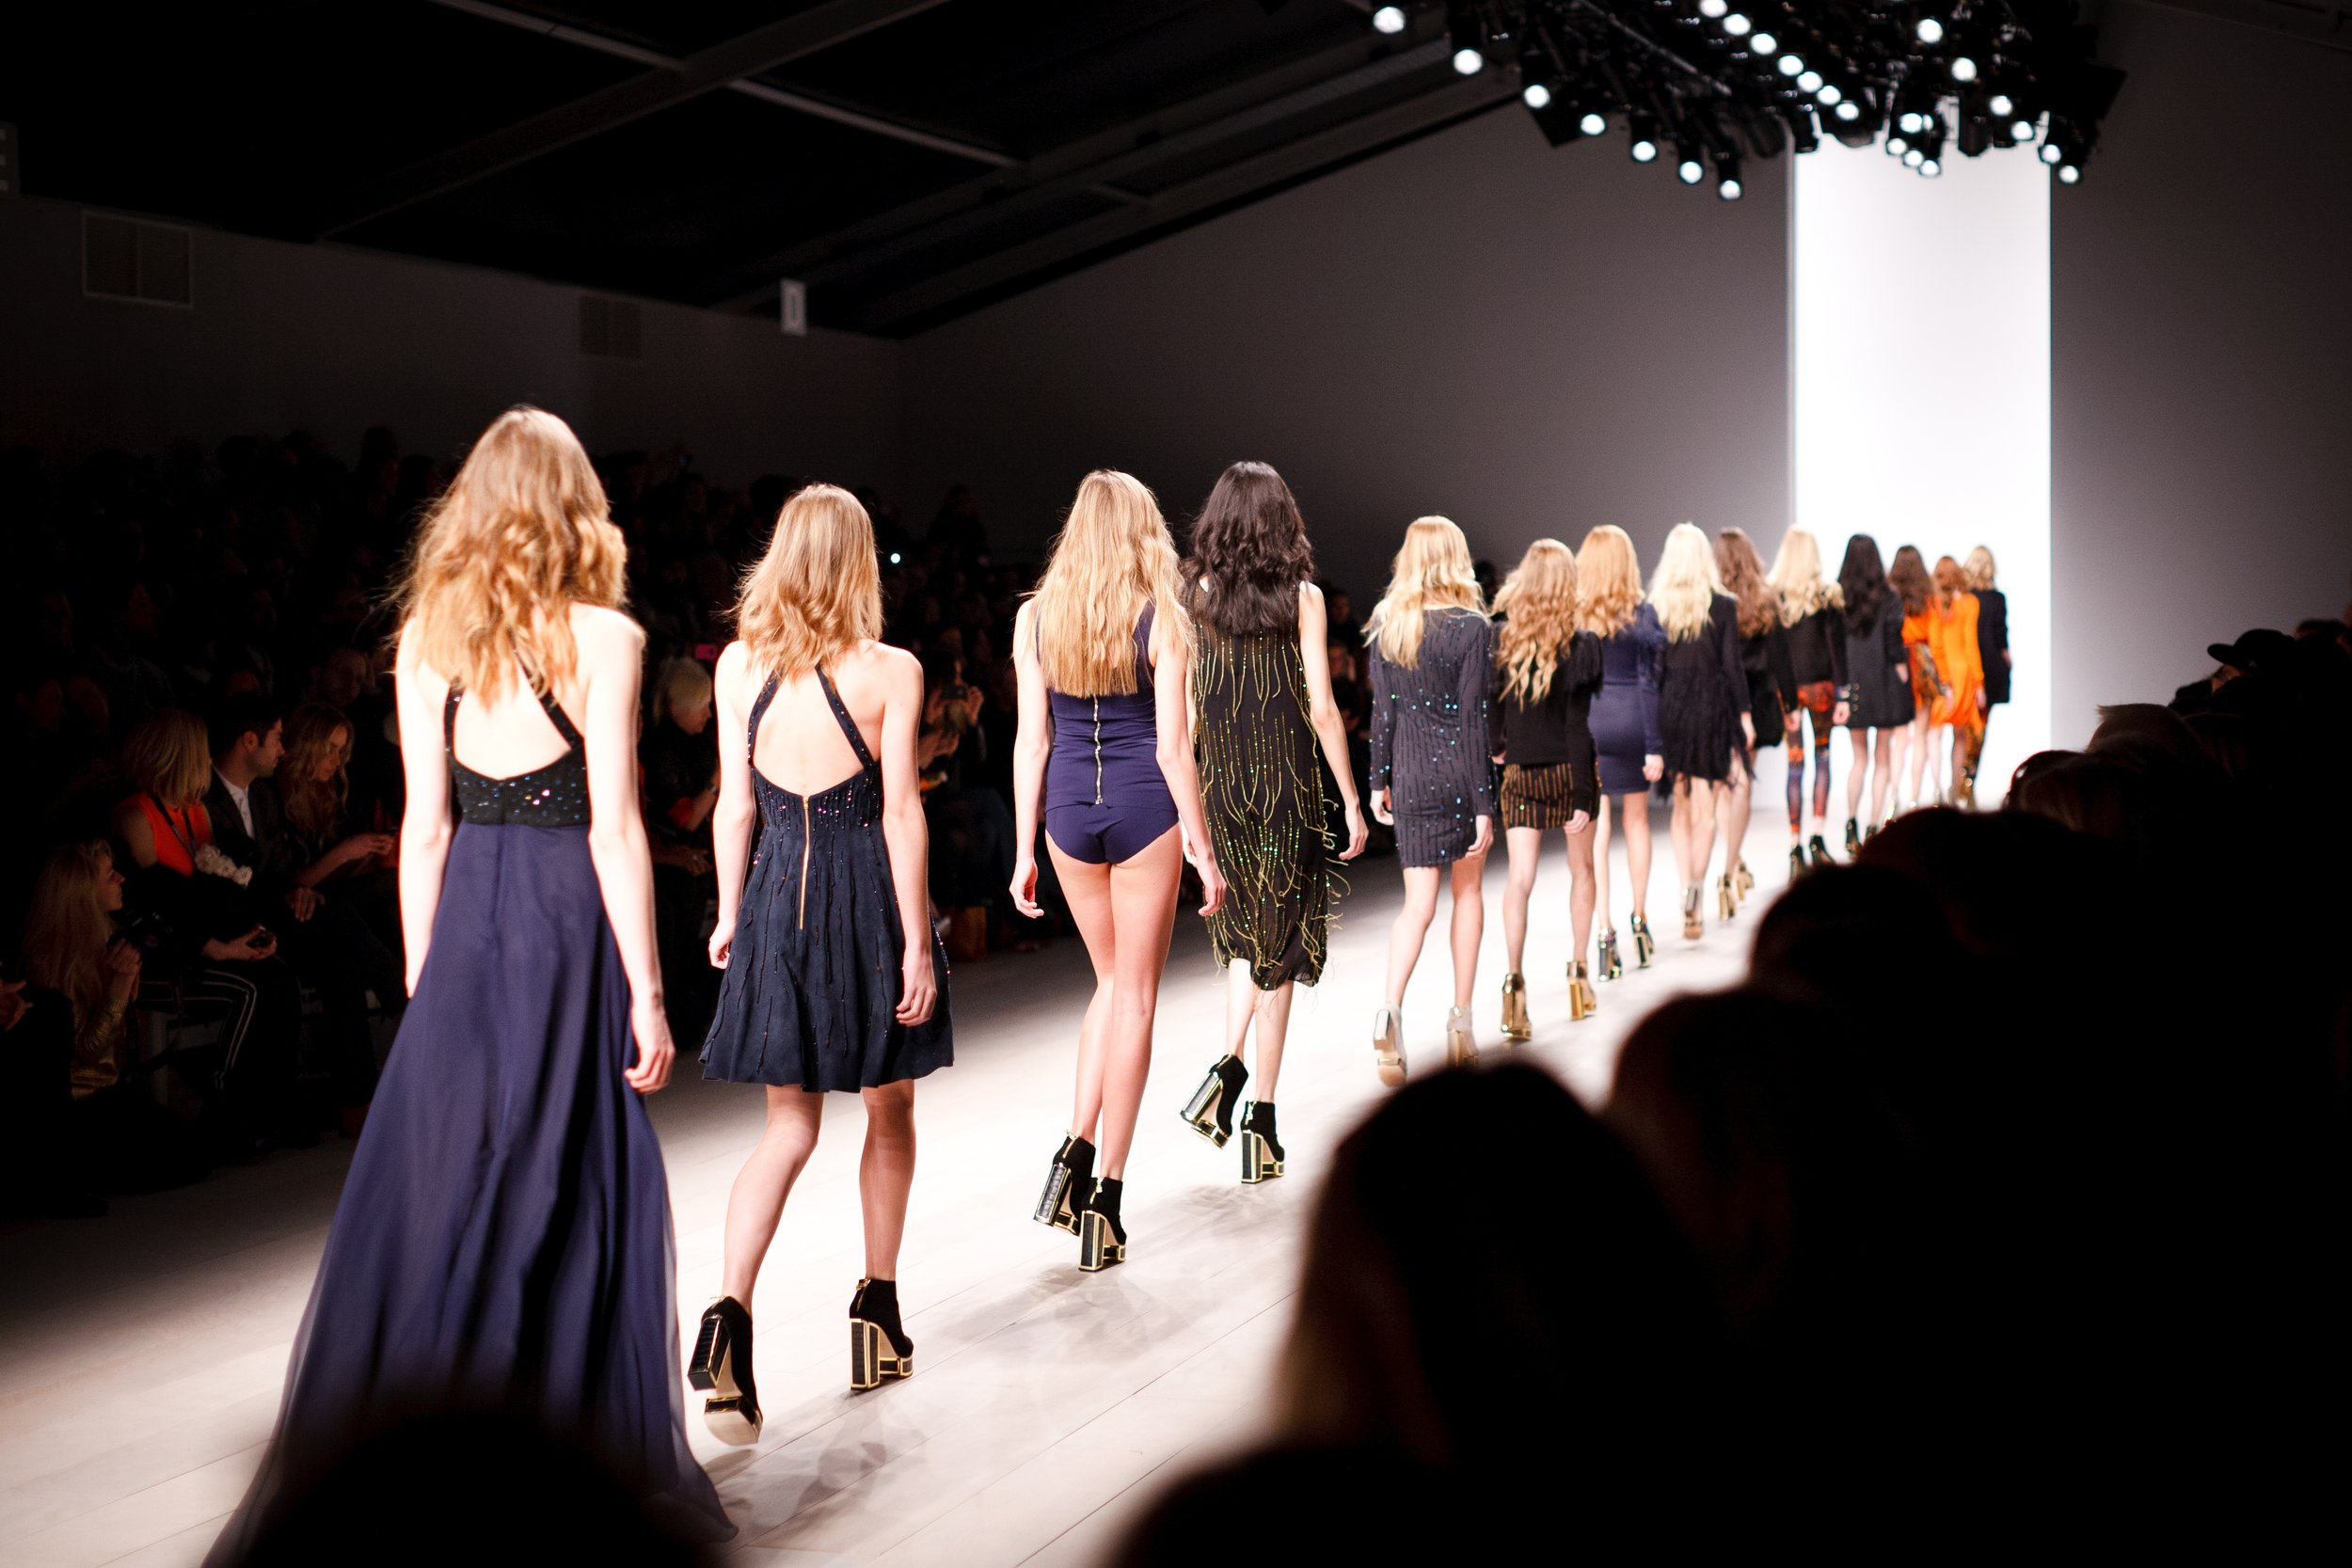 """Some fast fashion brands may bring out as many as 52 """"micro-seasons"""" per year. Photo: Pixabay"""